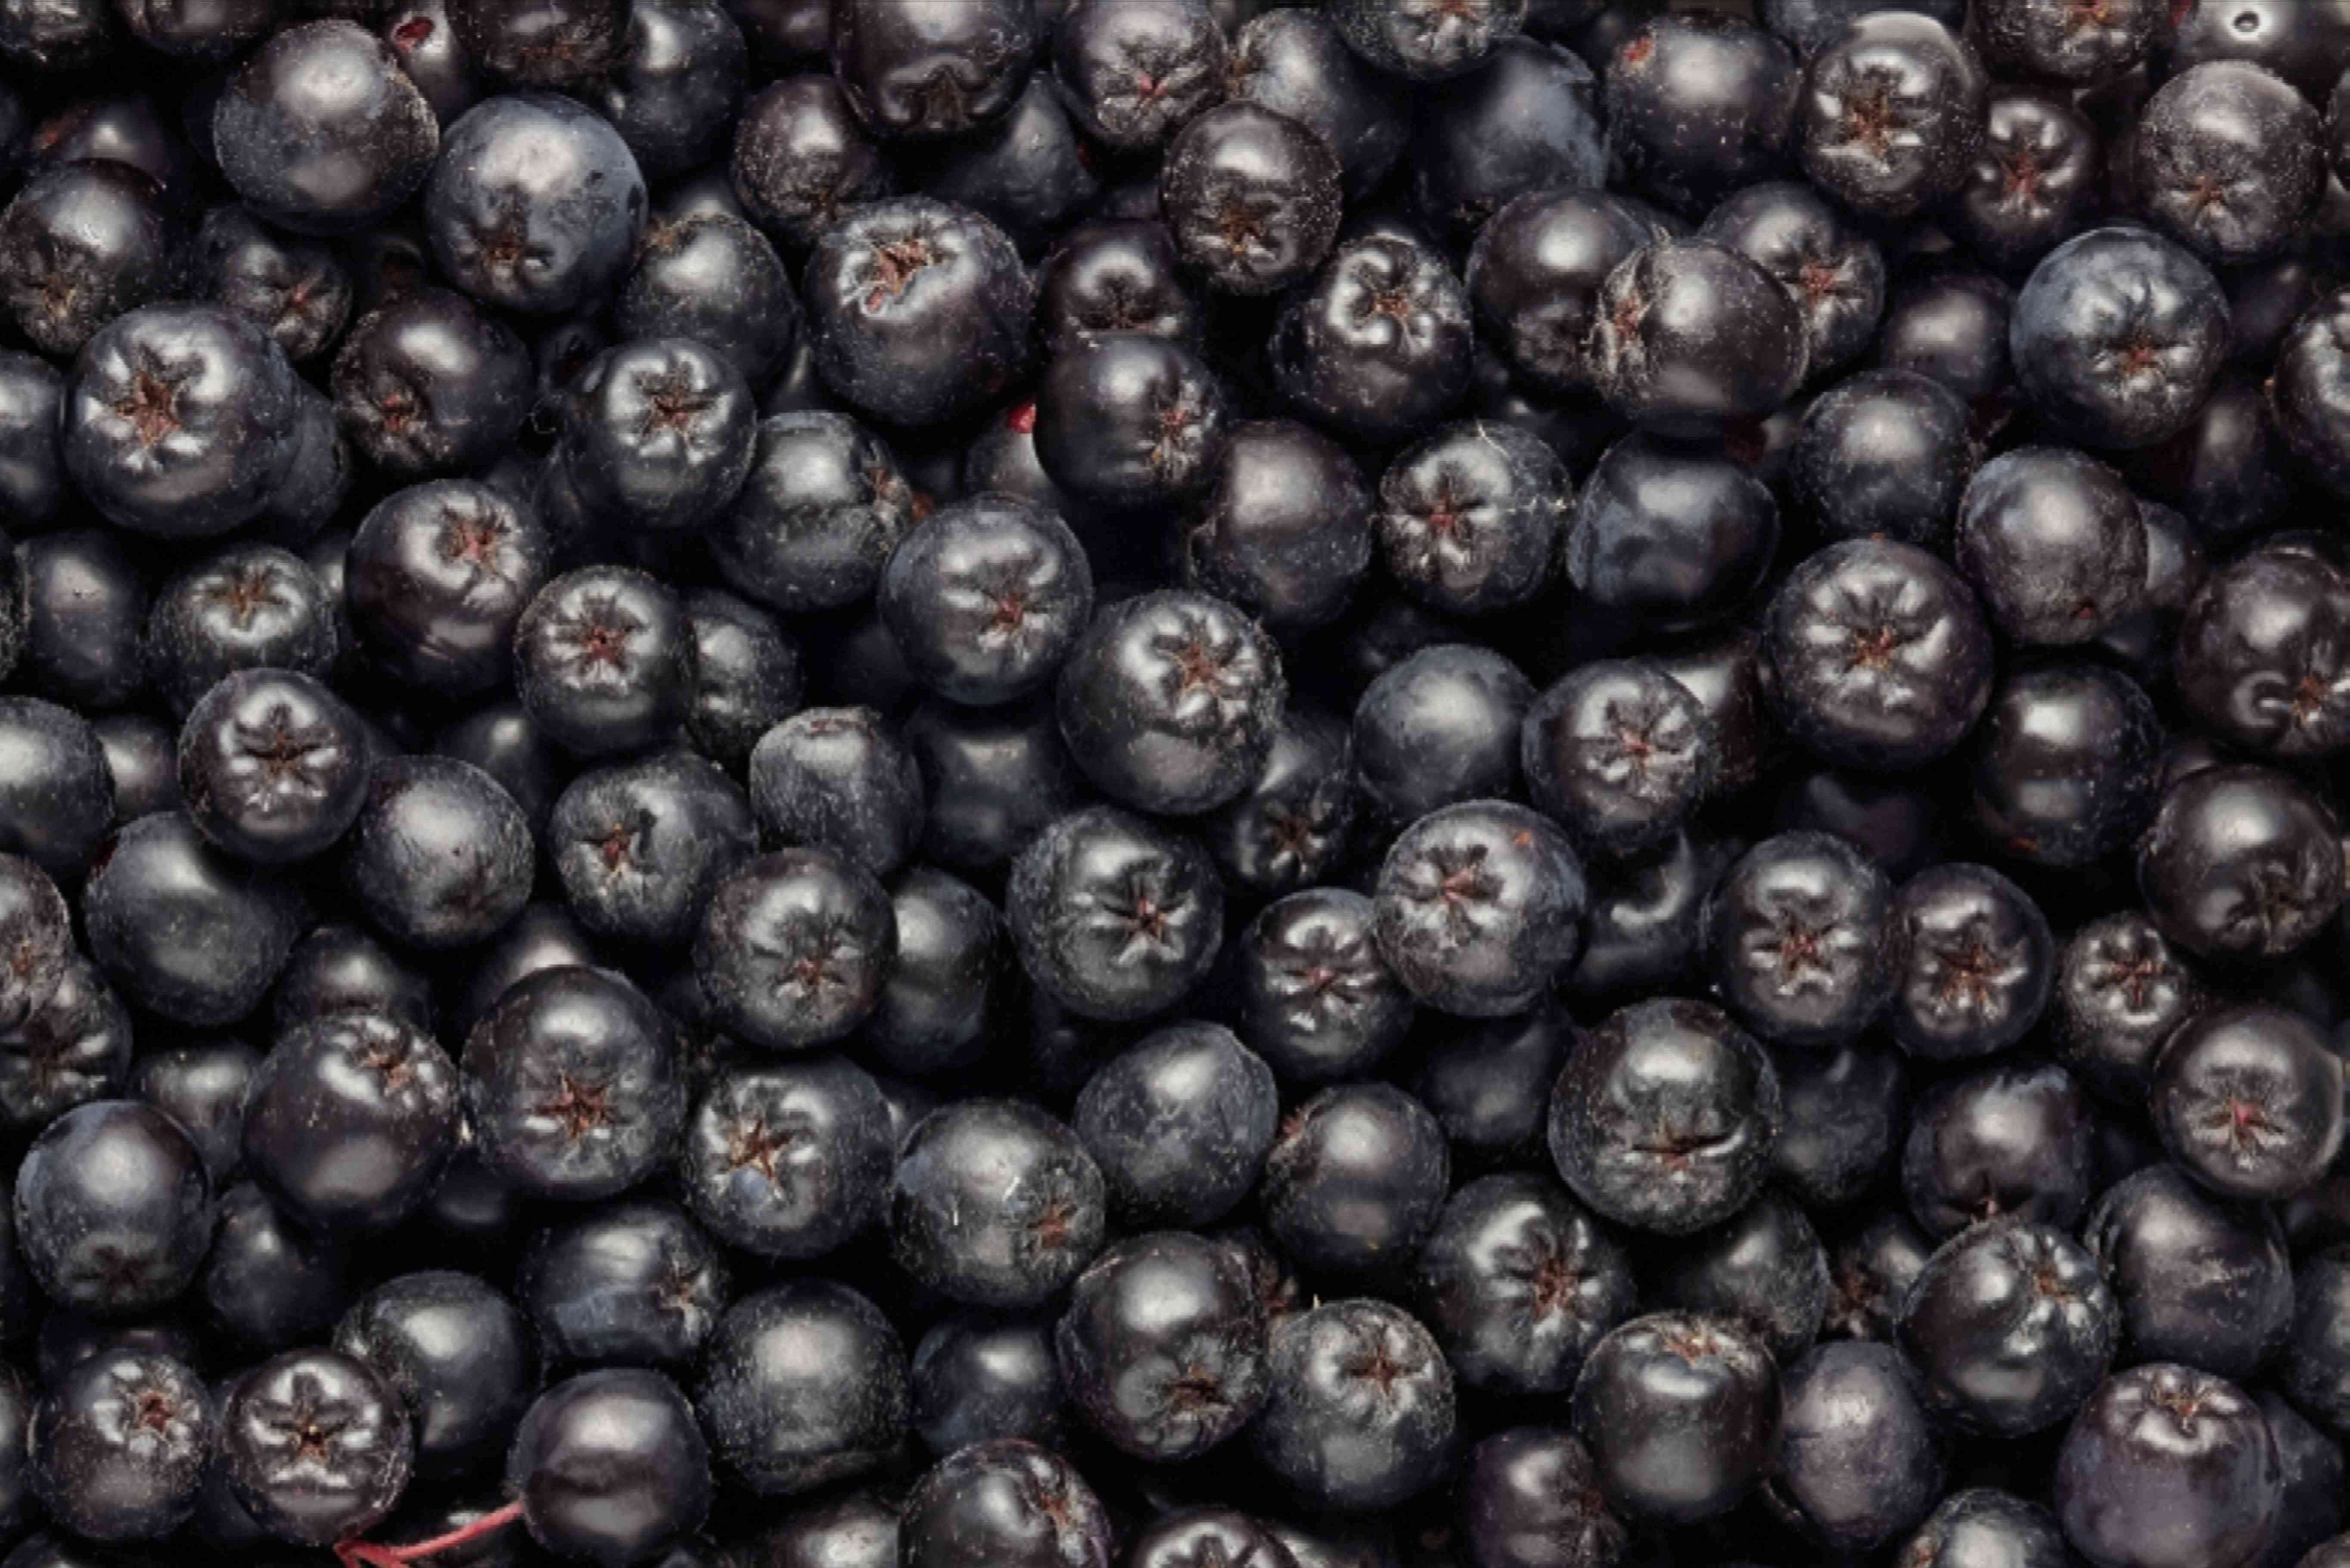 Black chokeberry fruits piled on each other closeup